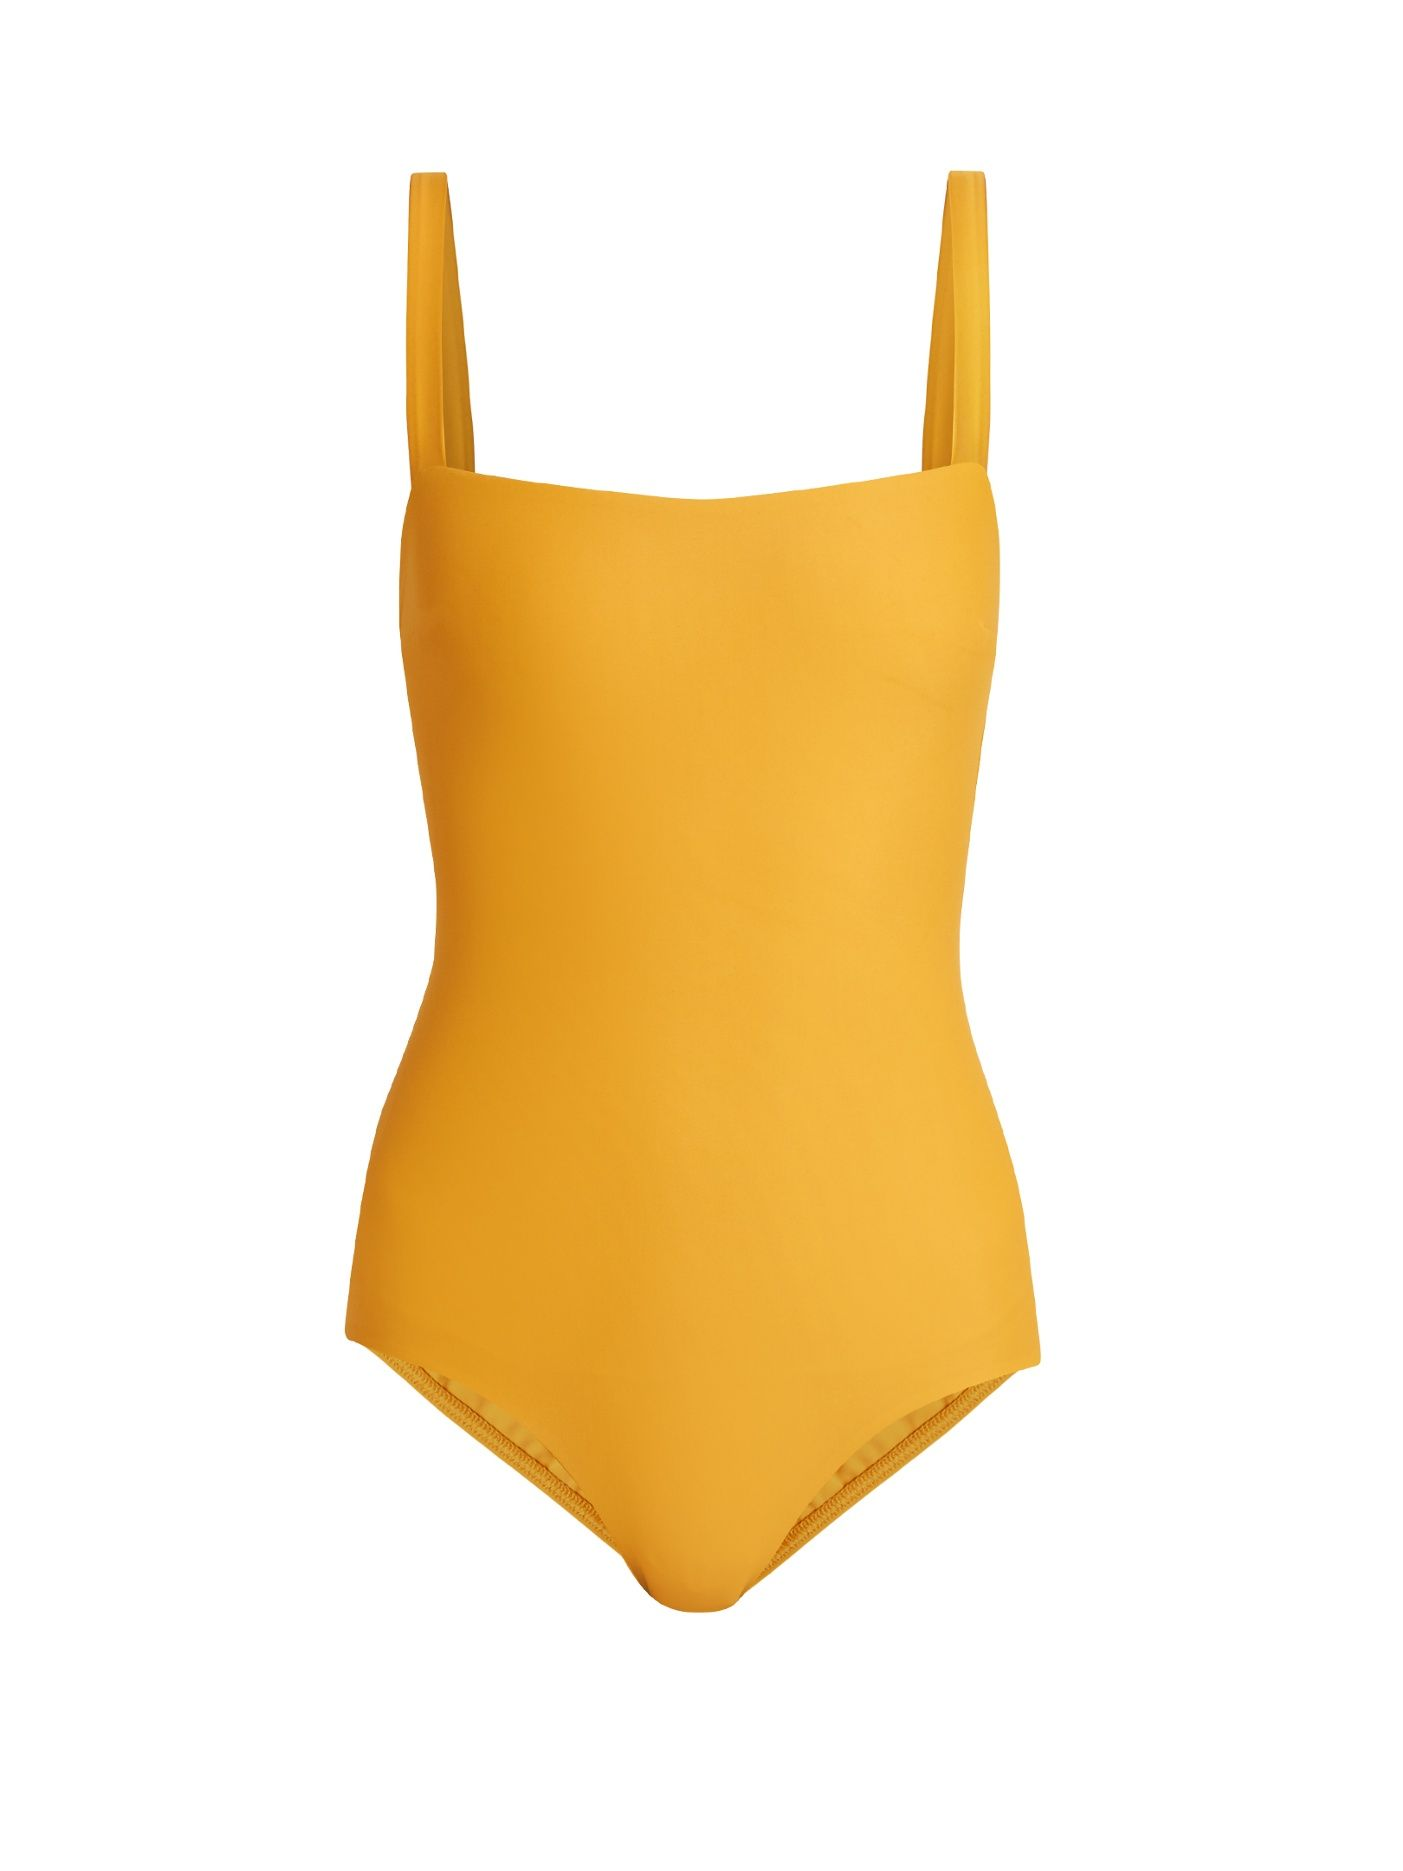 2727d05dde4e Matteau The Square swimsuit. Matteau The Square swimsuit Yellow Swimsuit  One Piece ...